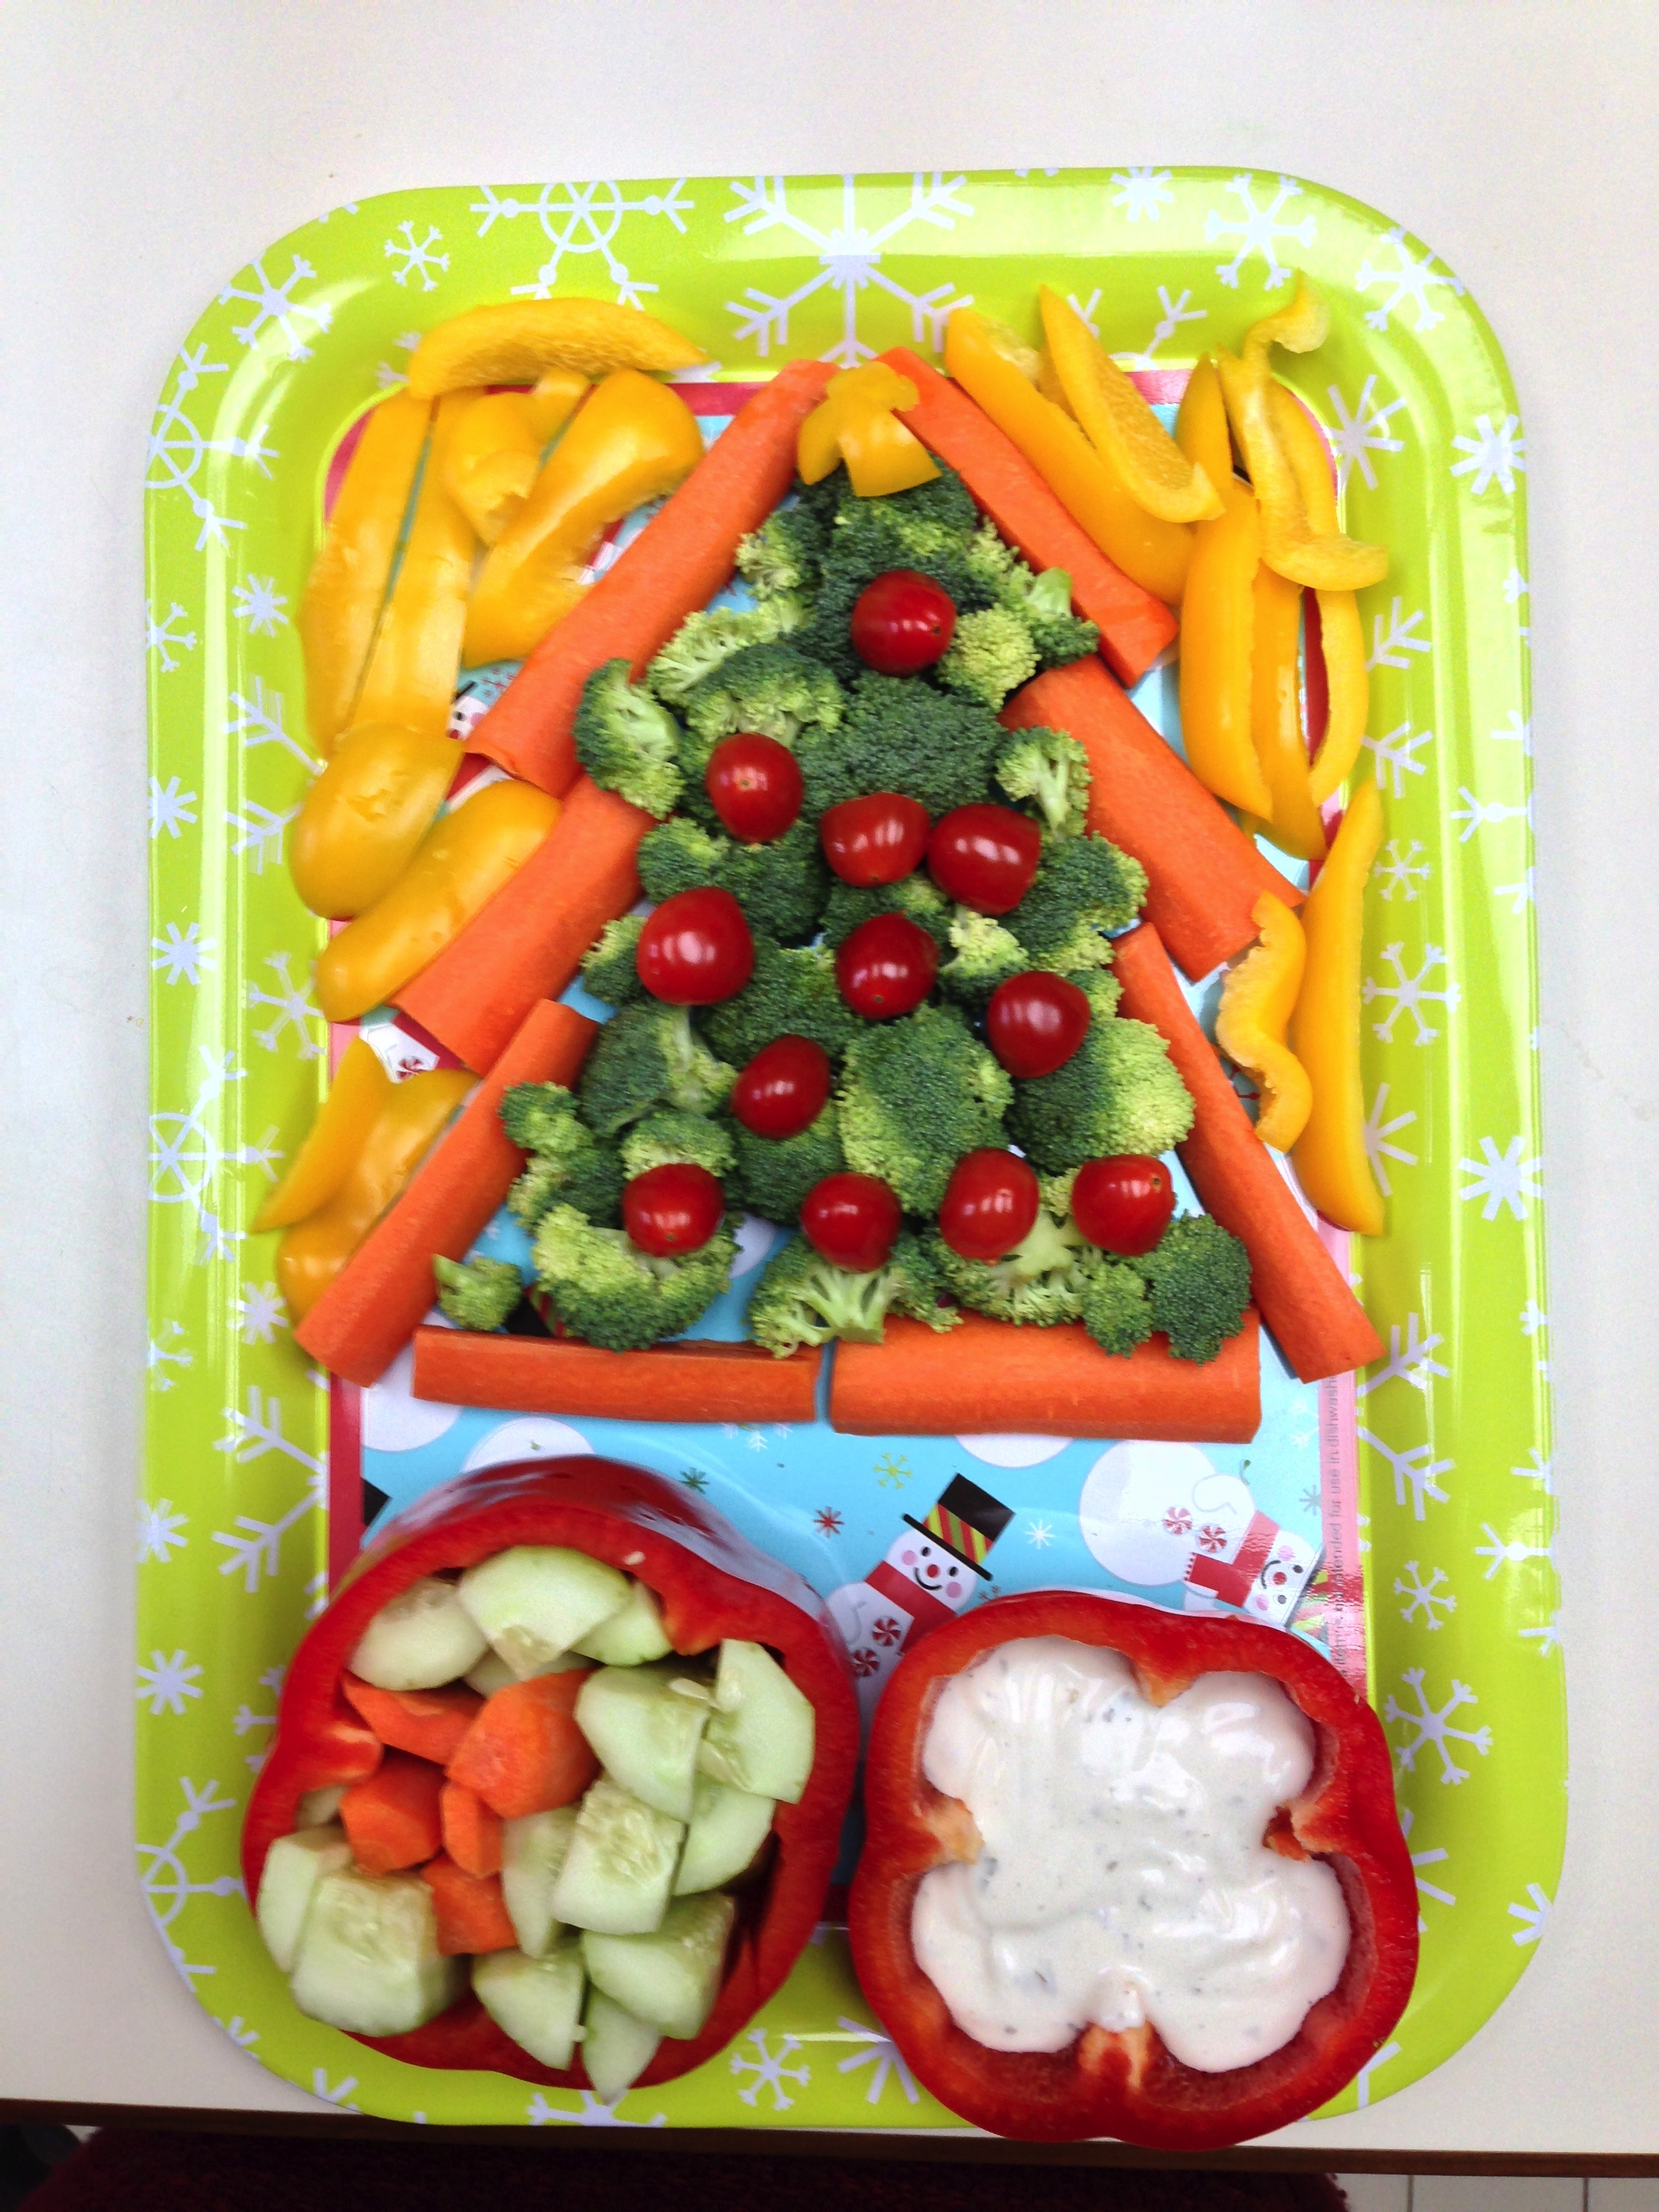 Merry Christmas! Fun, Healthy, Holiday Snack Idea